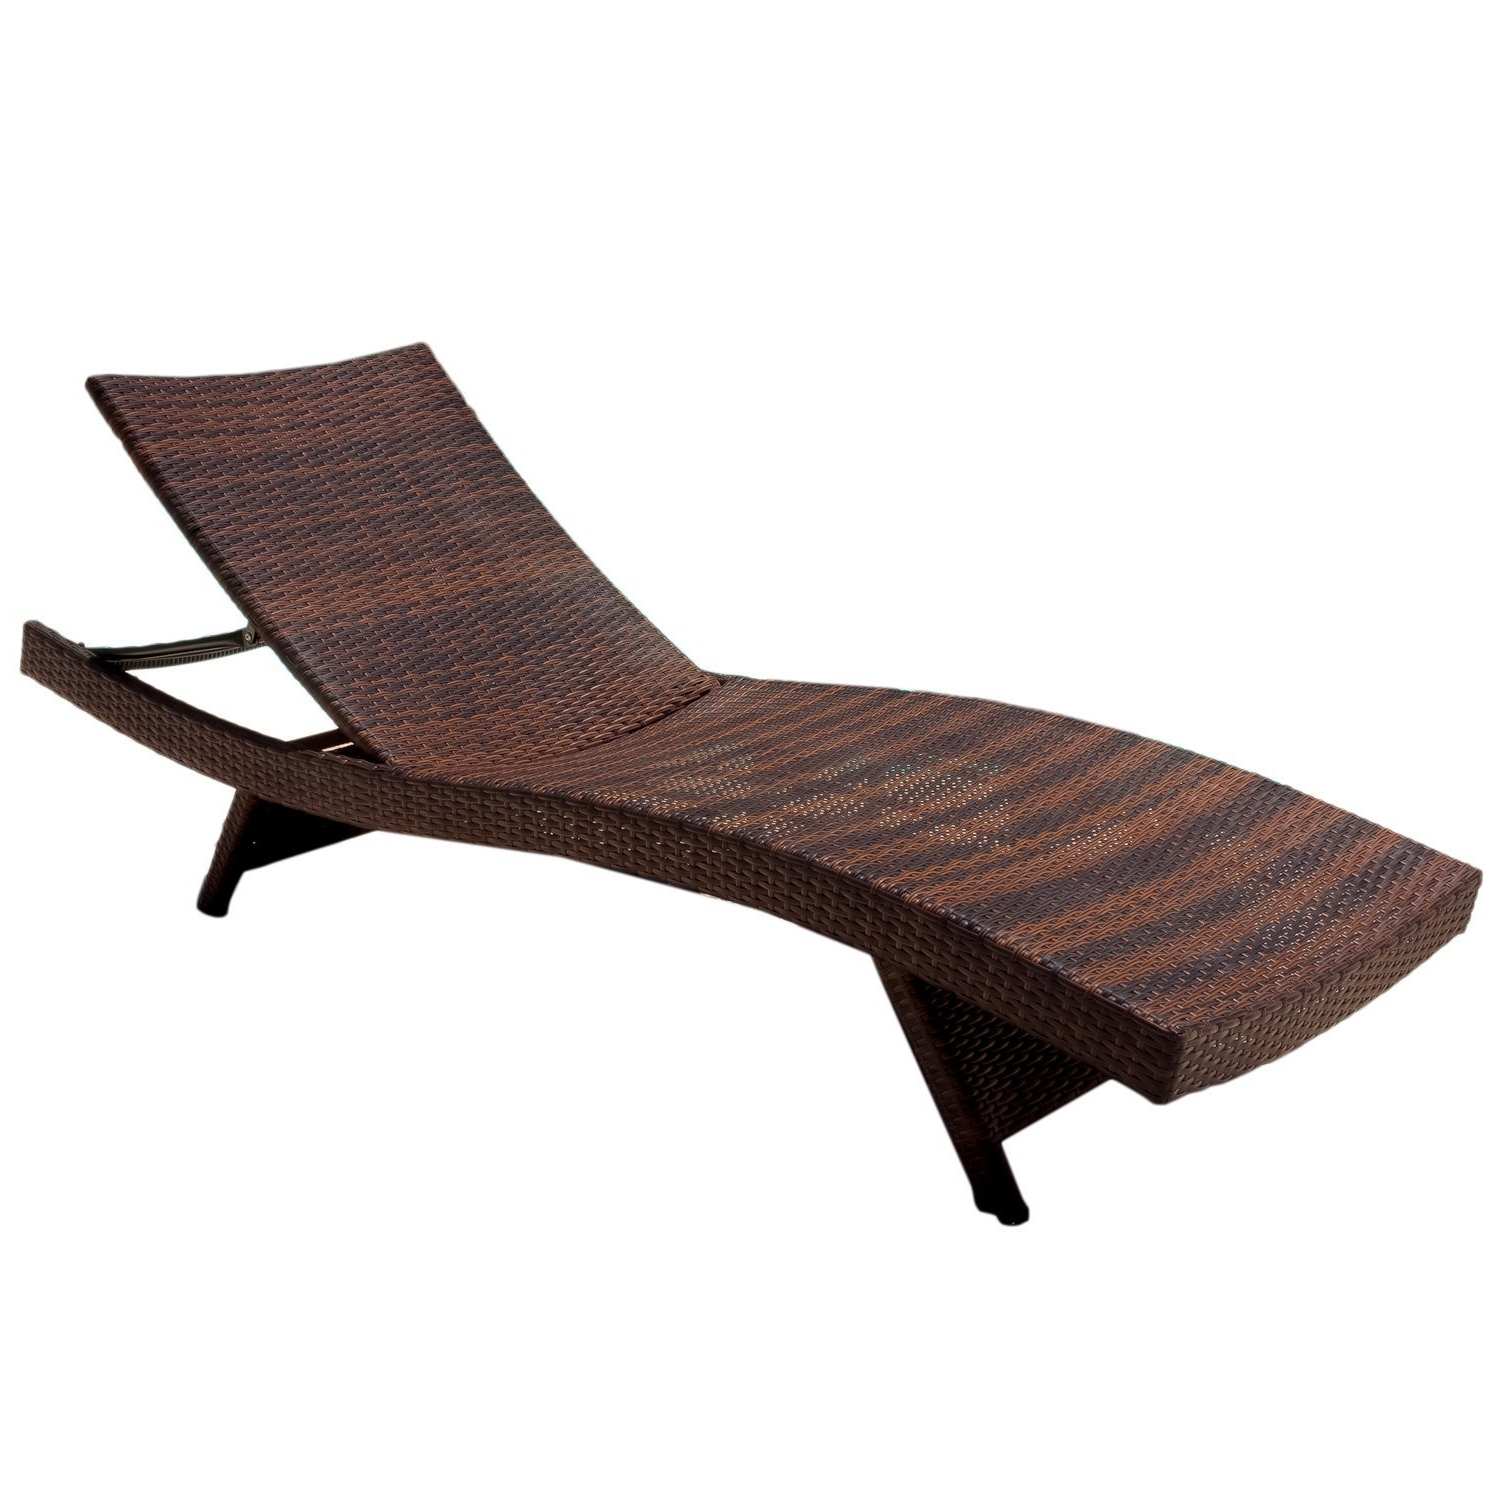 Best Chaise Lounge Chairs Top 15 Of Wicker Chaise Lounge Chairs For Outdoor